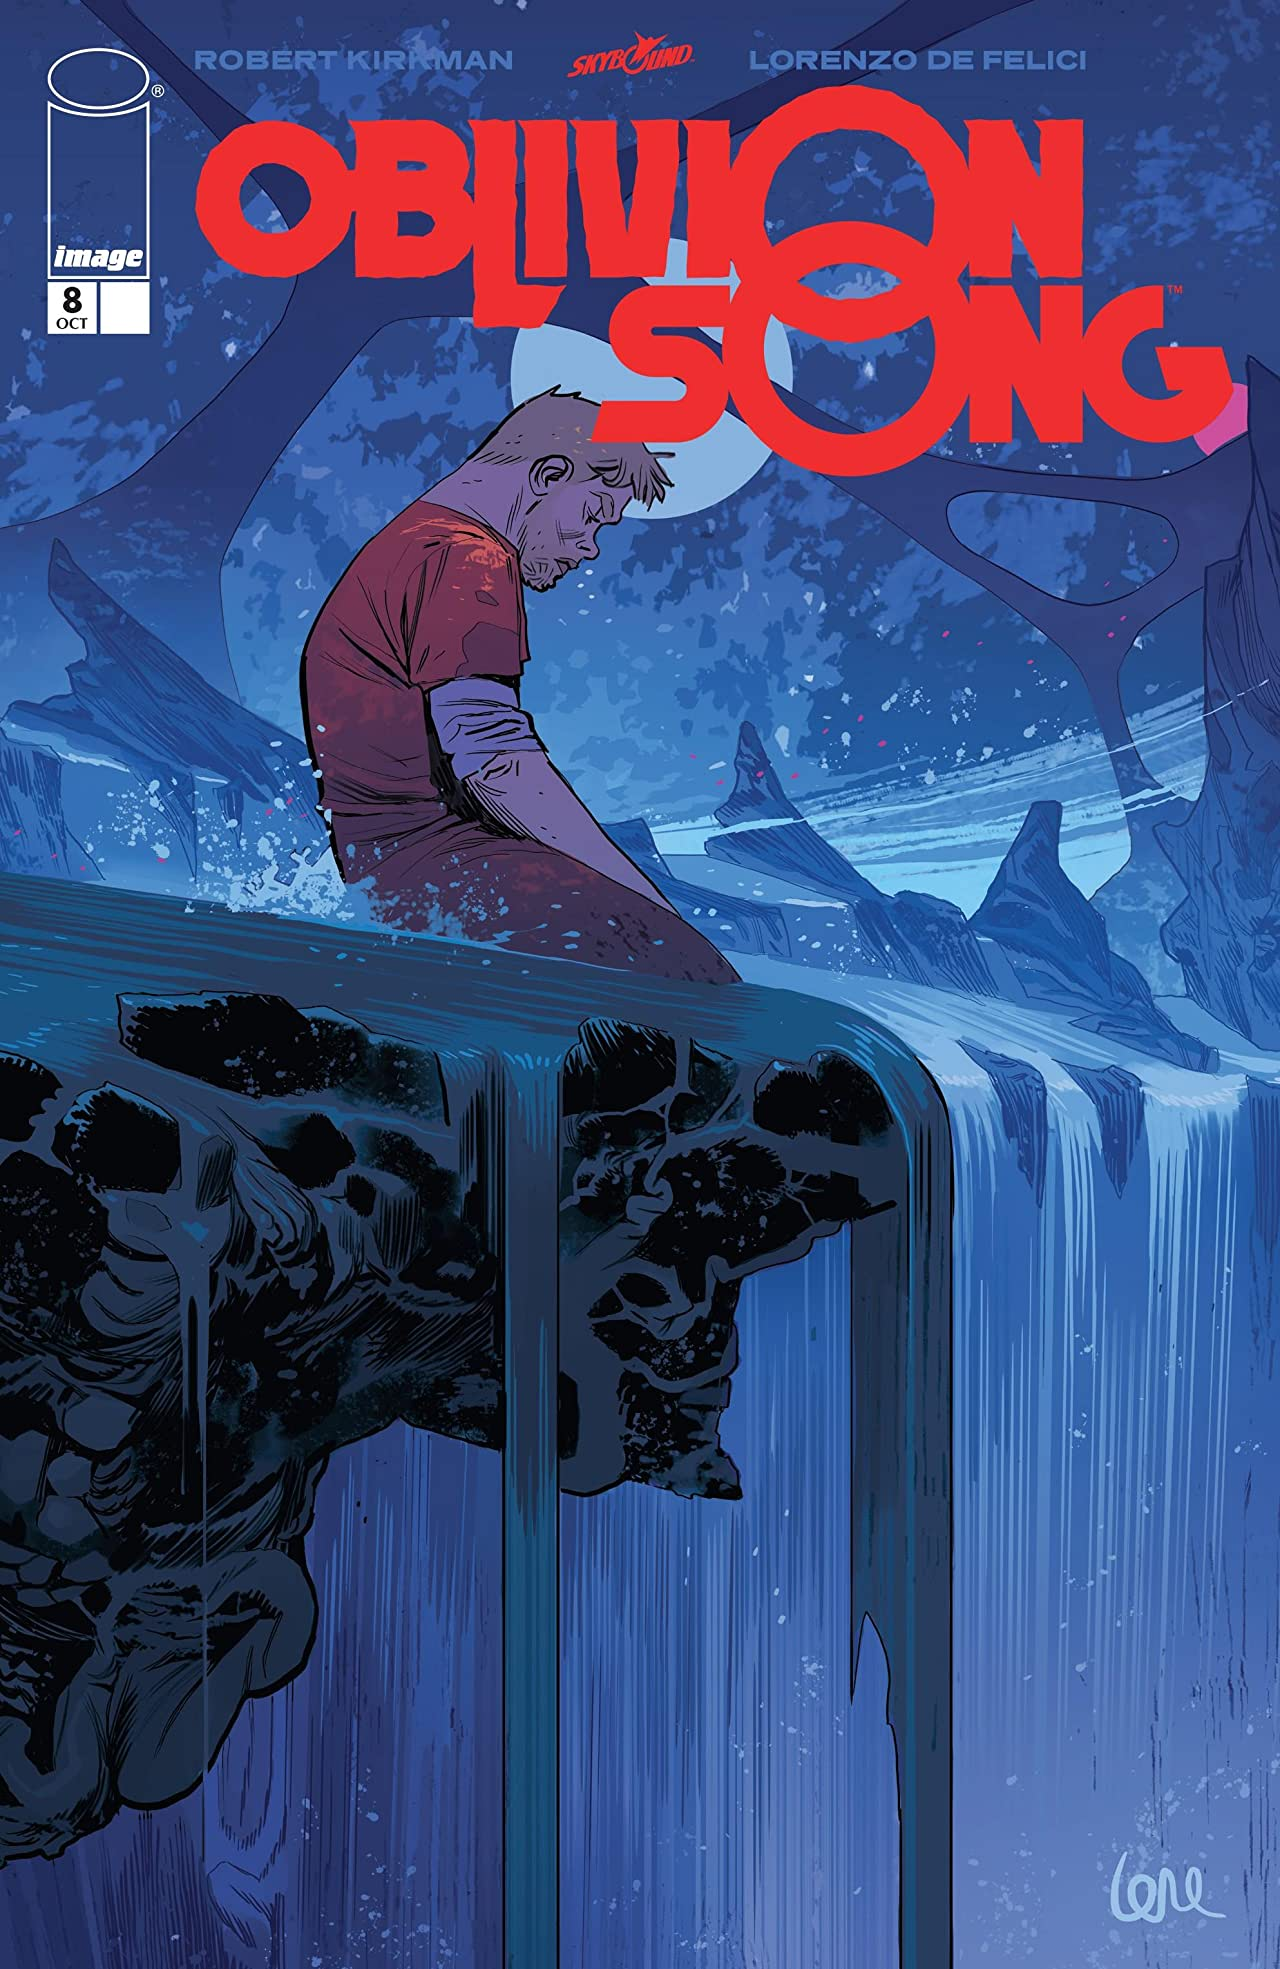 Oblivion Song By Kirkman & De Felici #8